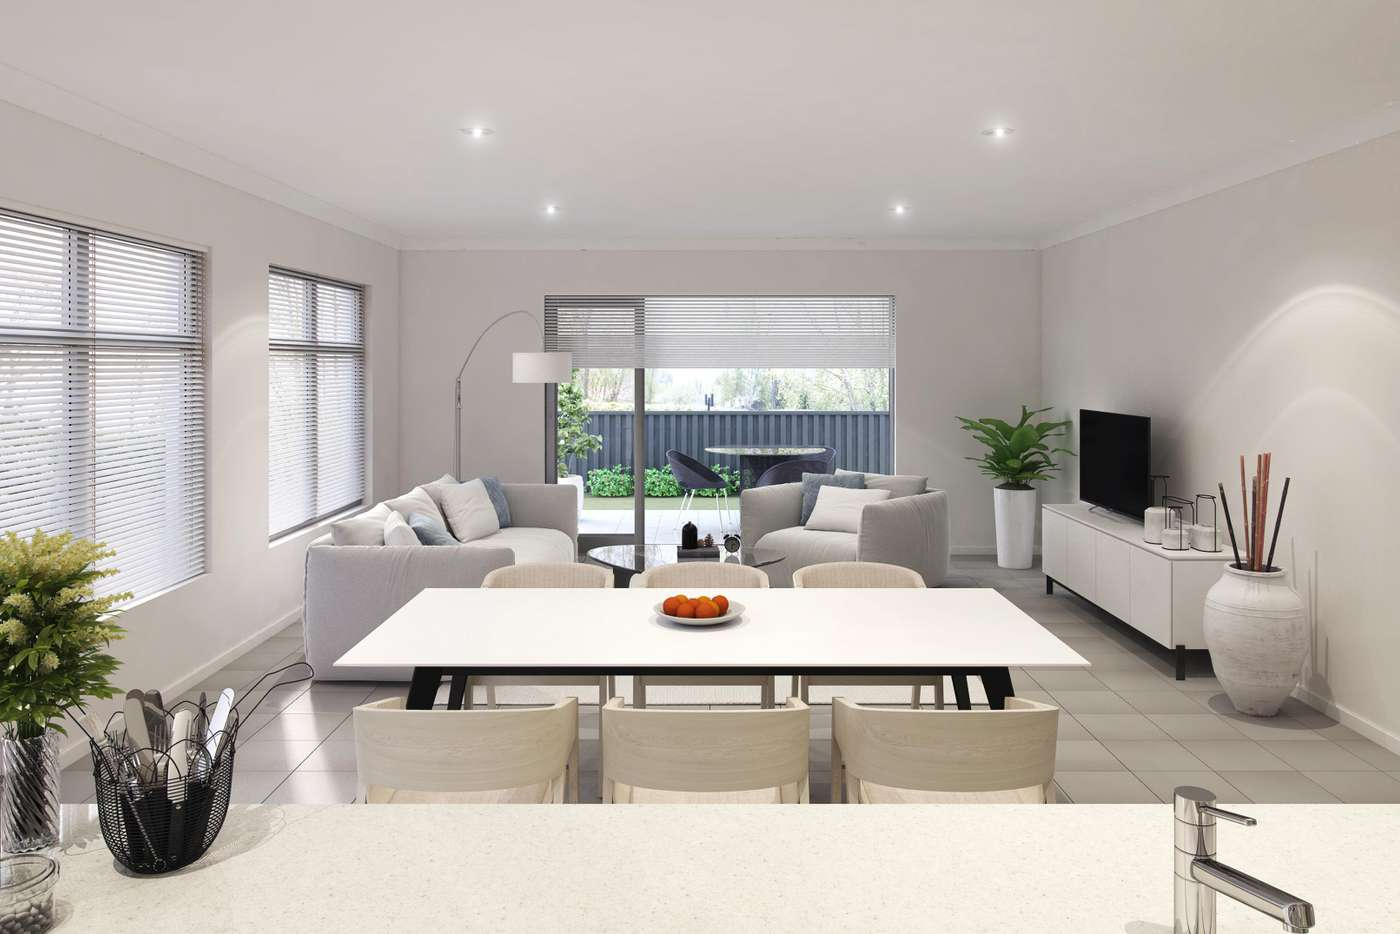 Seventh view of Homely house listing, 4 Gosnells Road West, Maddington WA 6109